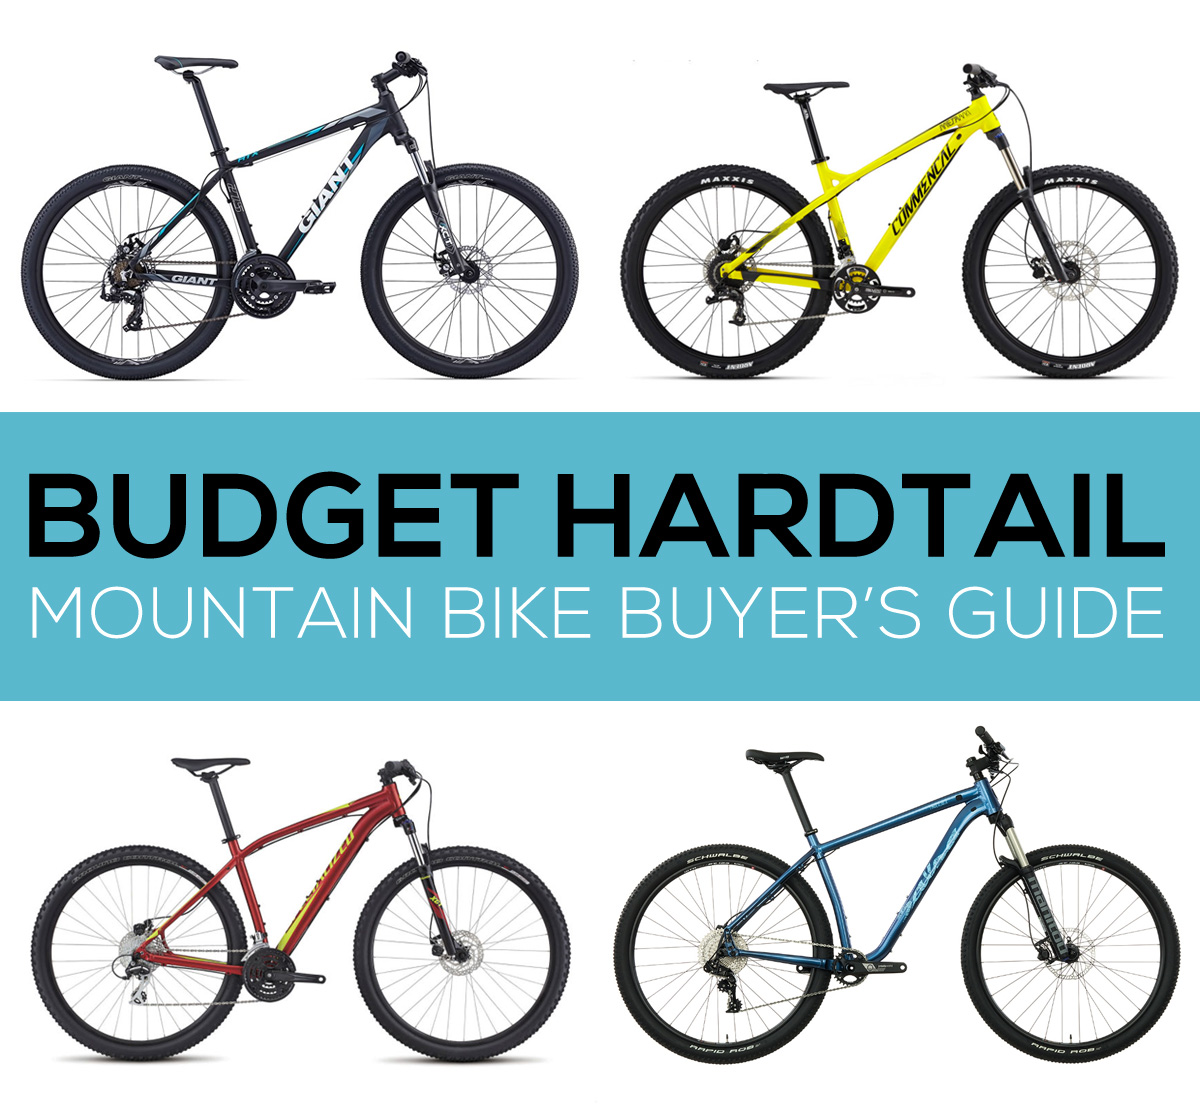 66f6c23ad83 Buyer's Guide: Budget Hardtail Mountain Bikes - Singletracks ...